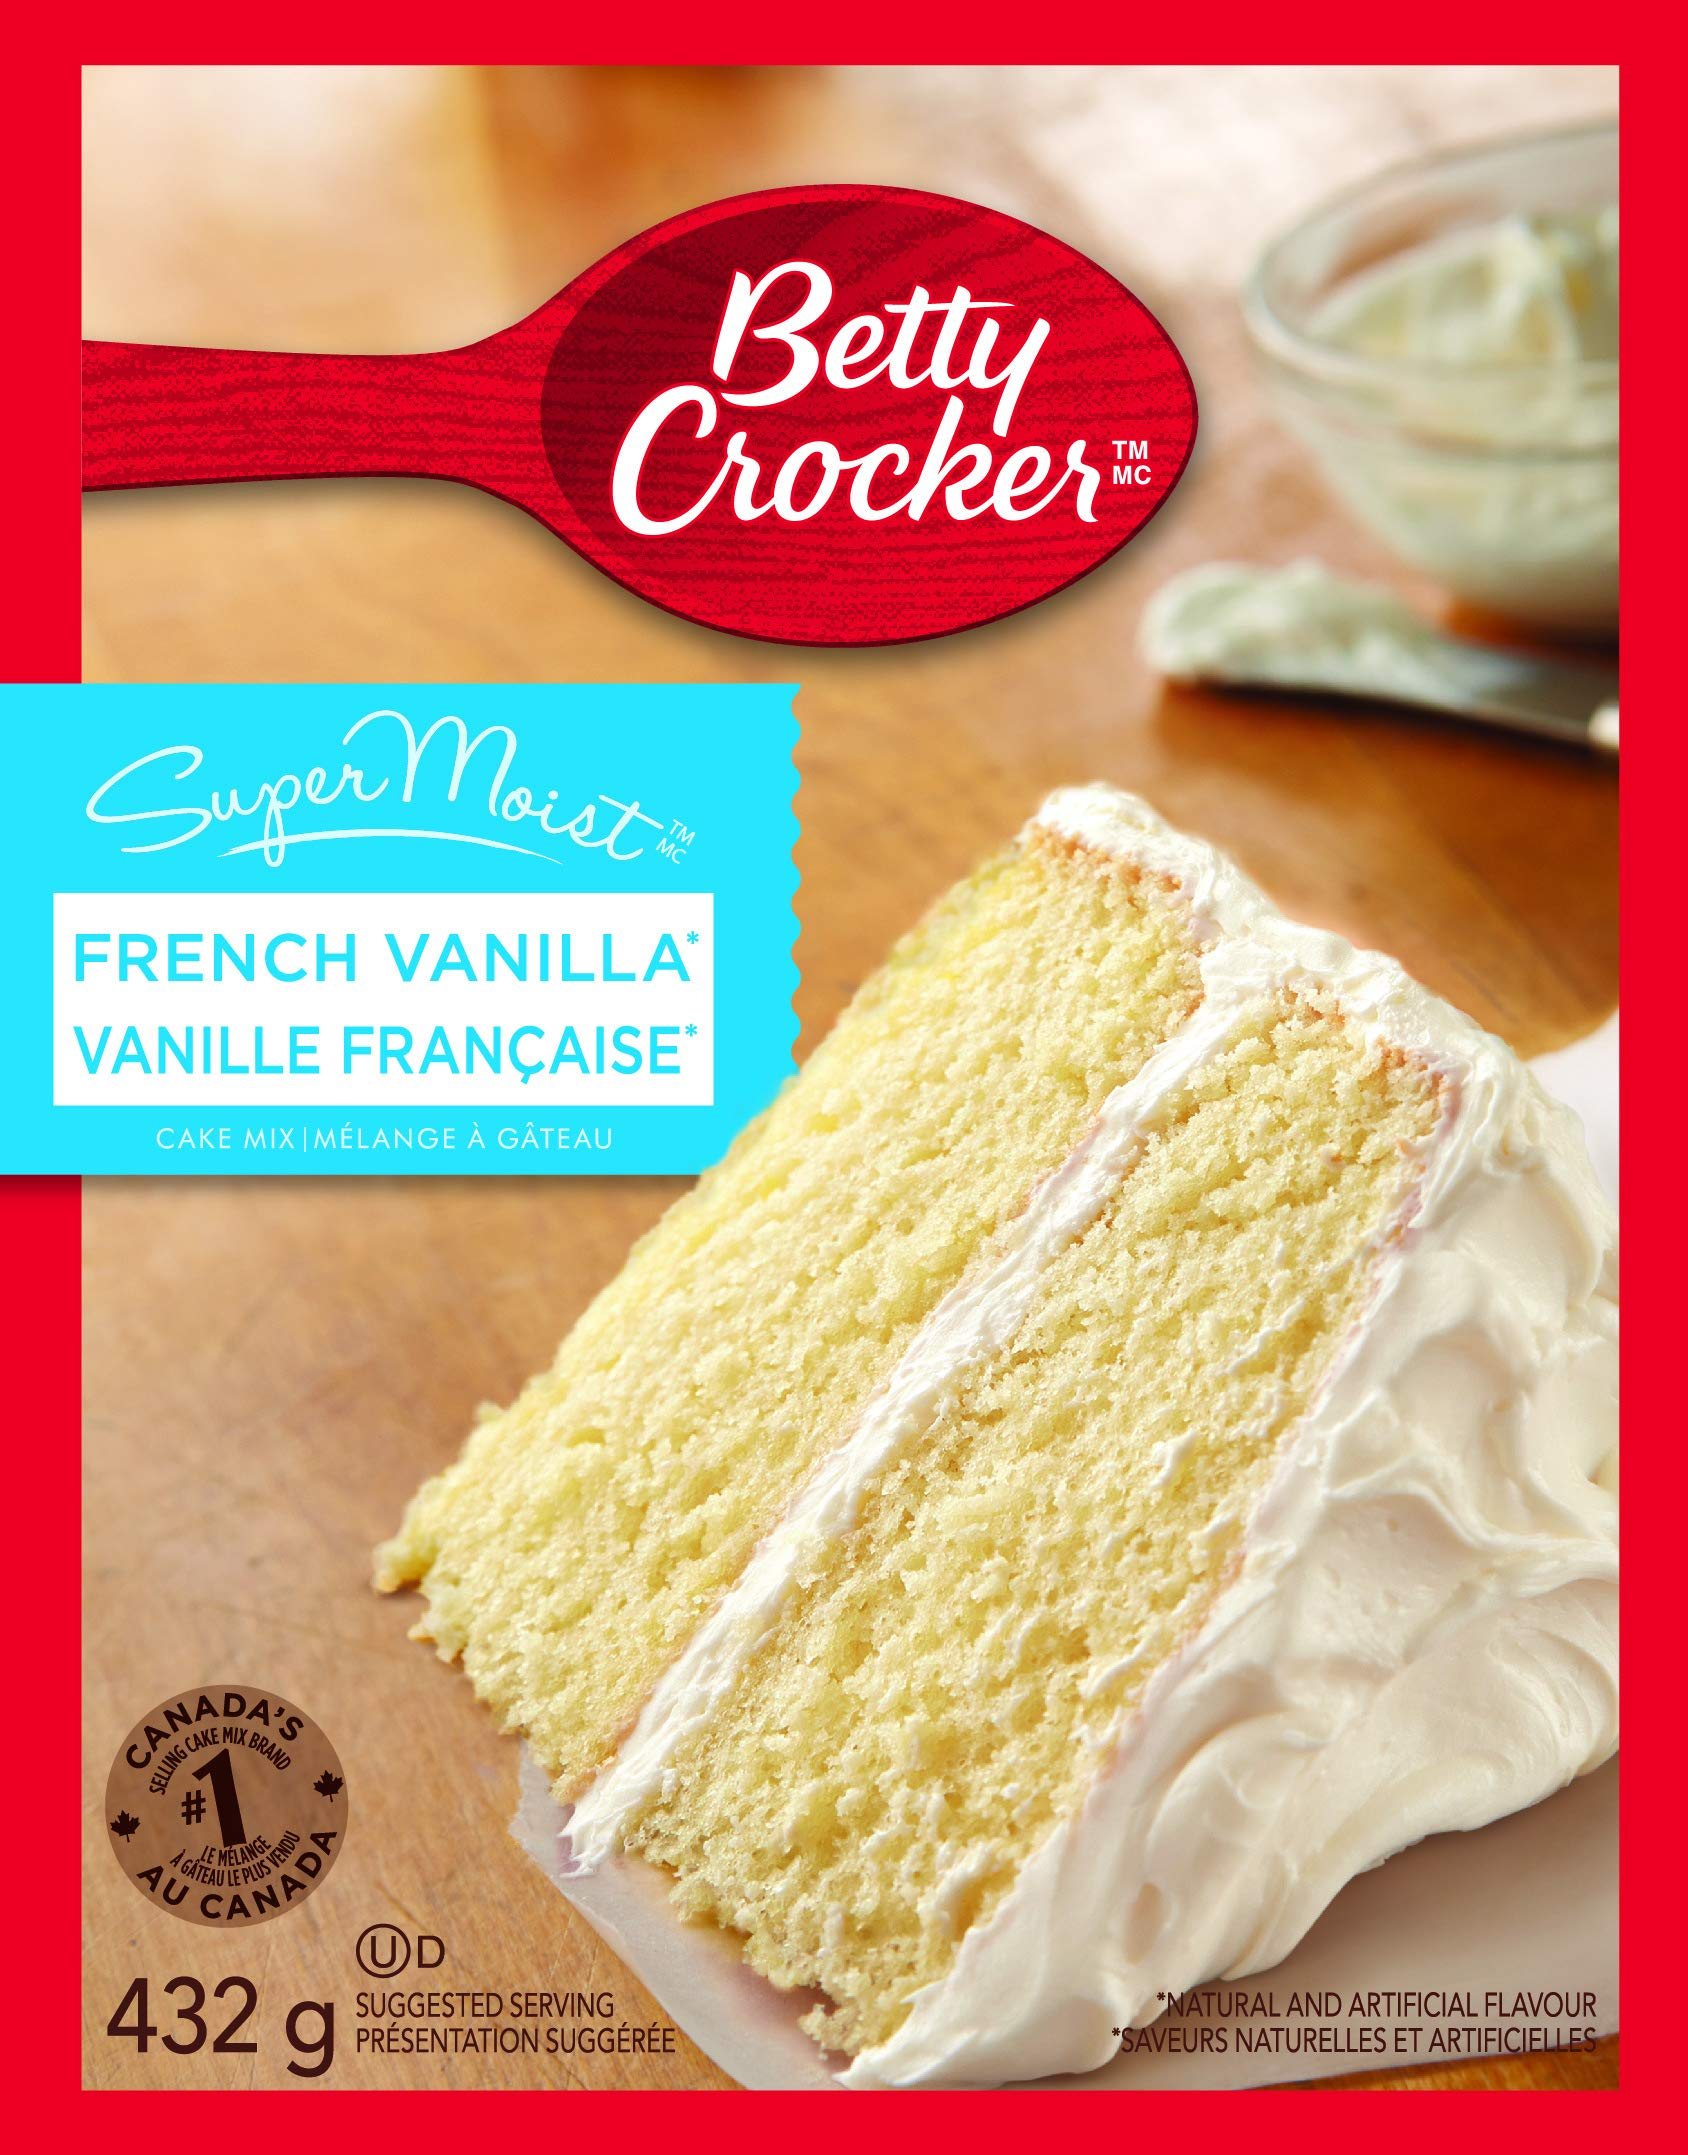 Betty Crocker Super Moist French Vanilla Cake Mix 432 Grams / 15.25 Oz - 4 Packs by Betty Crocker